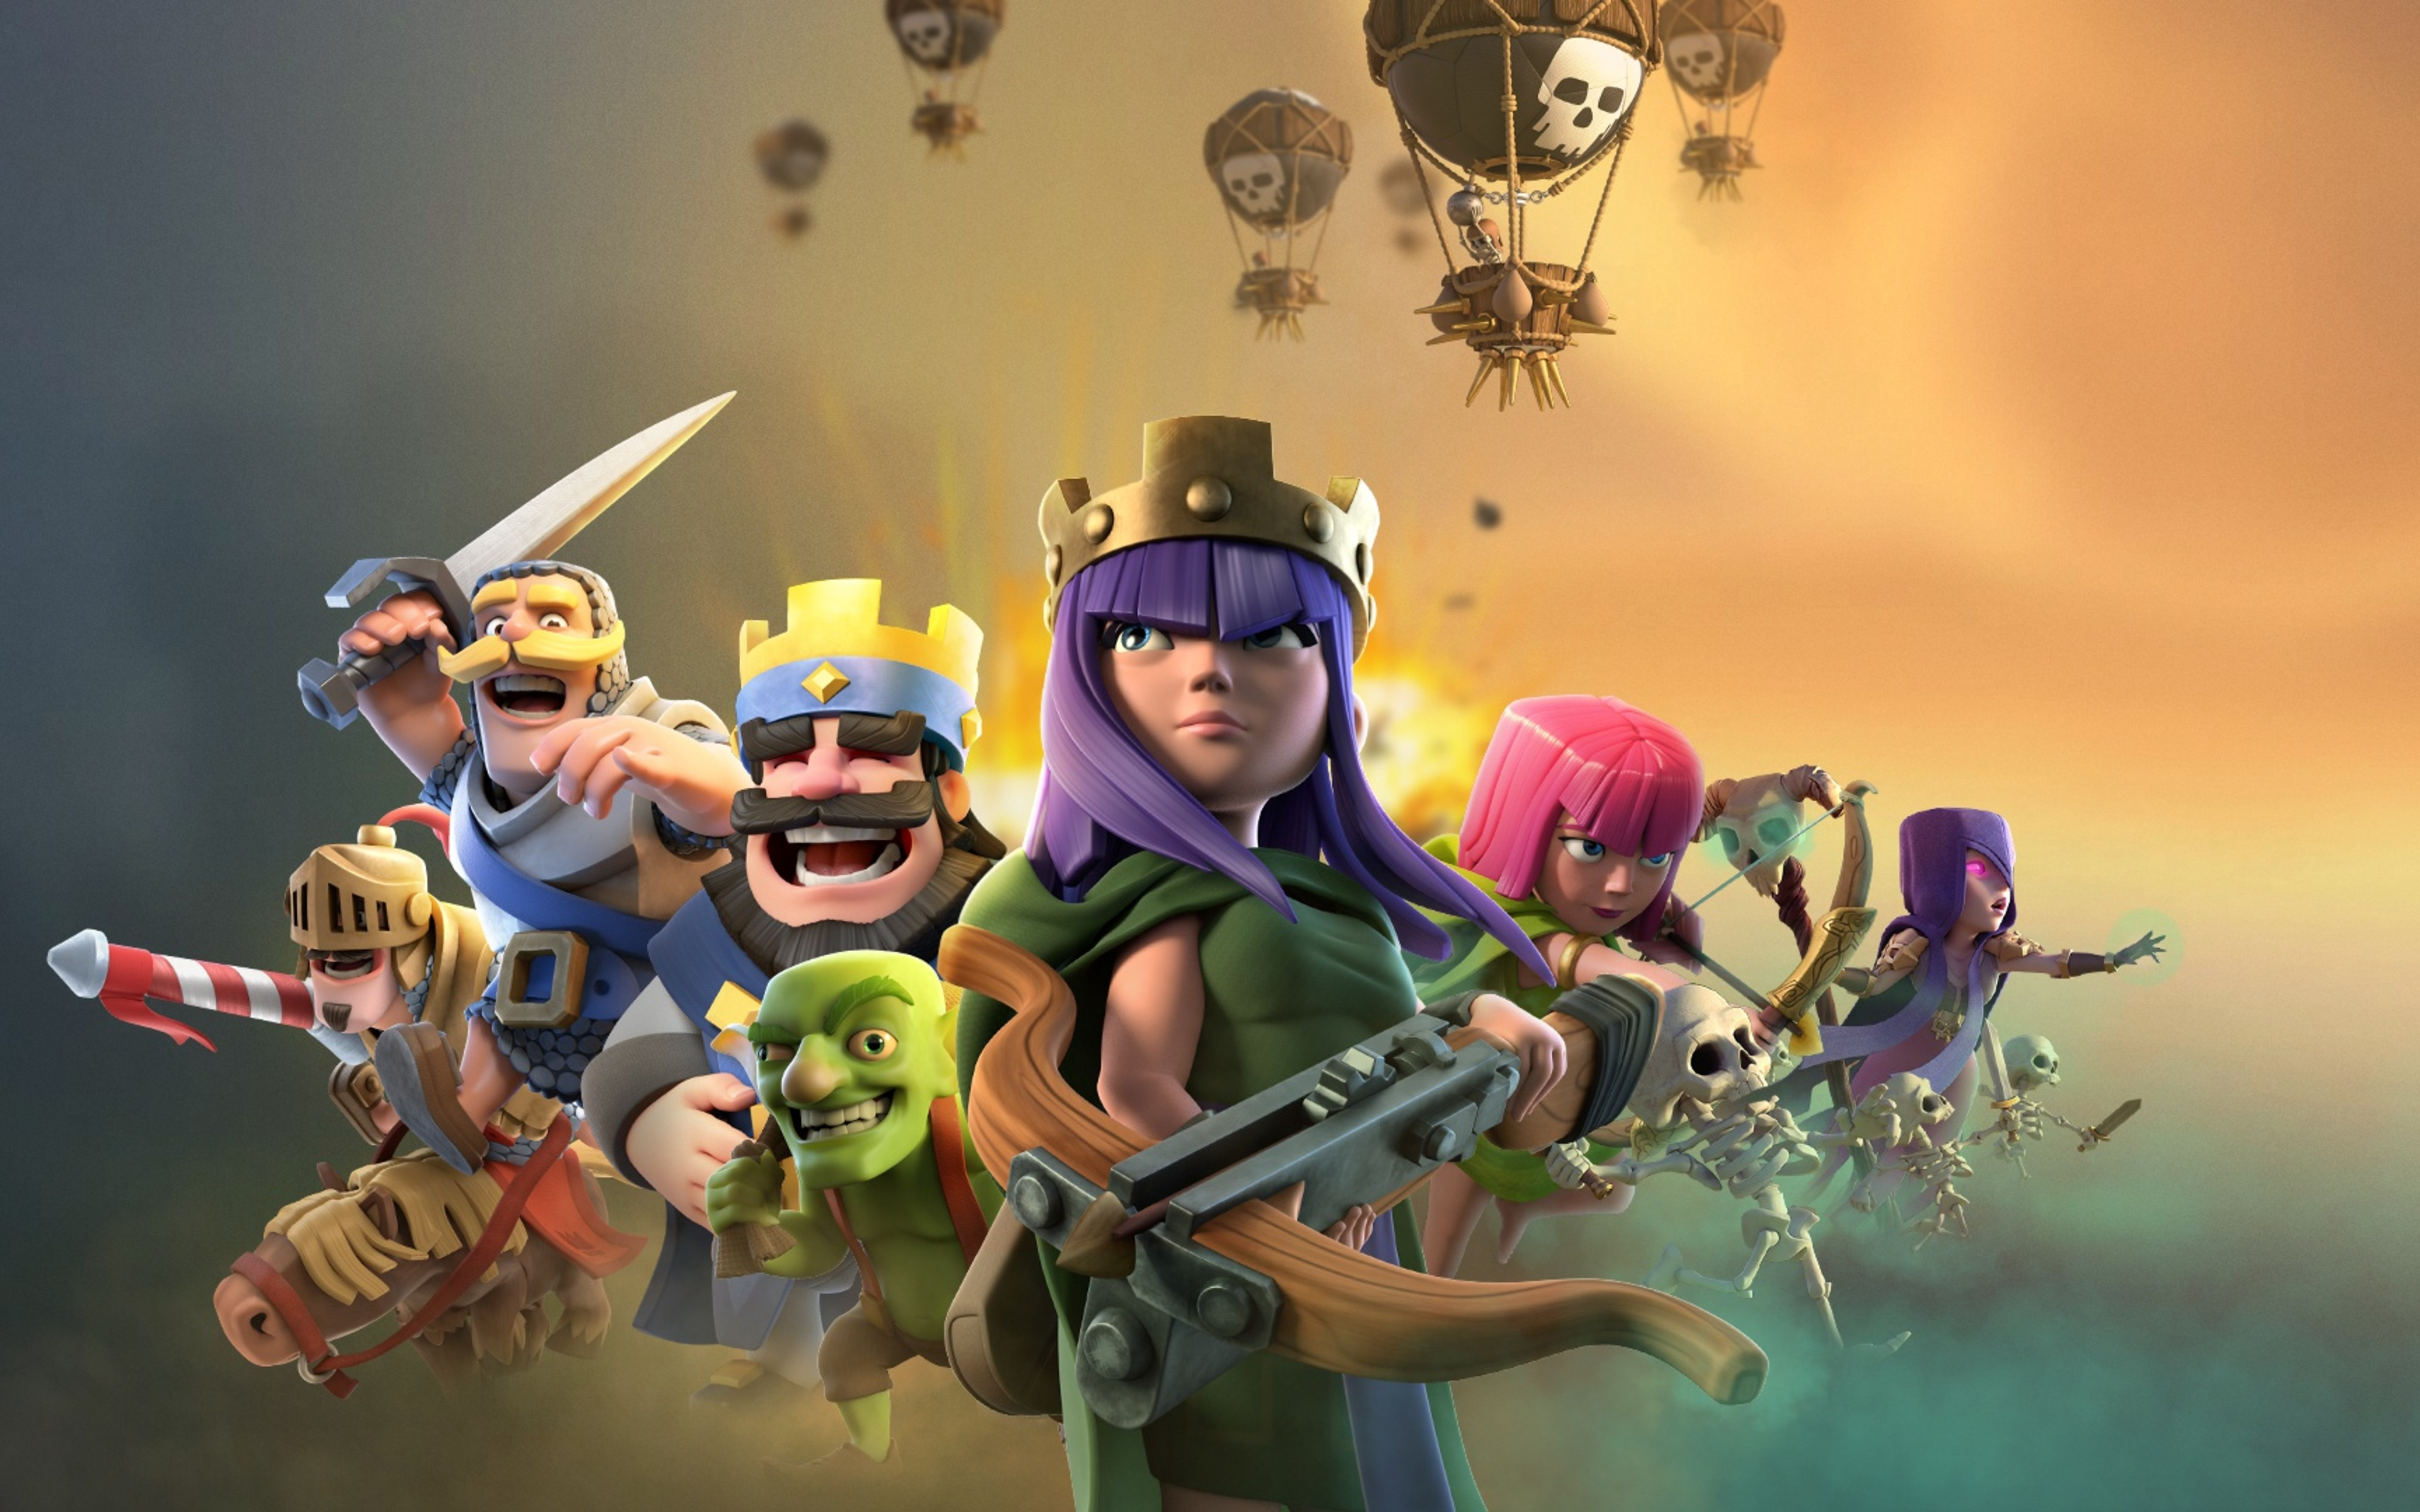 3840x2400 Clash Of Clans Clash Royale Supercell Games 4k ...